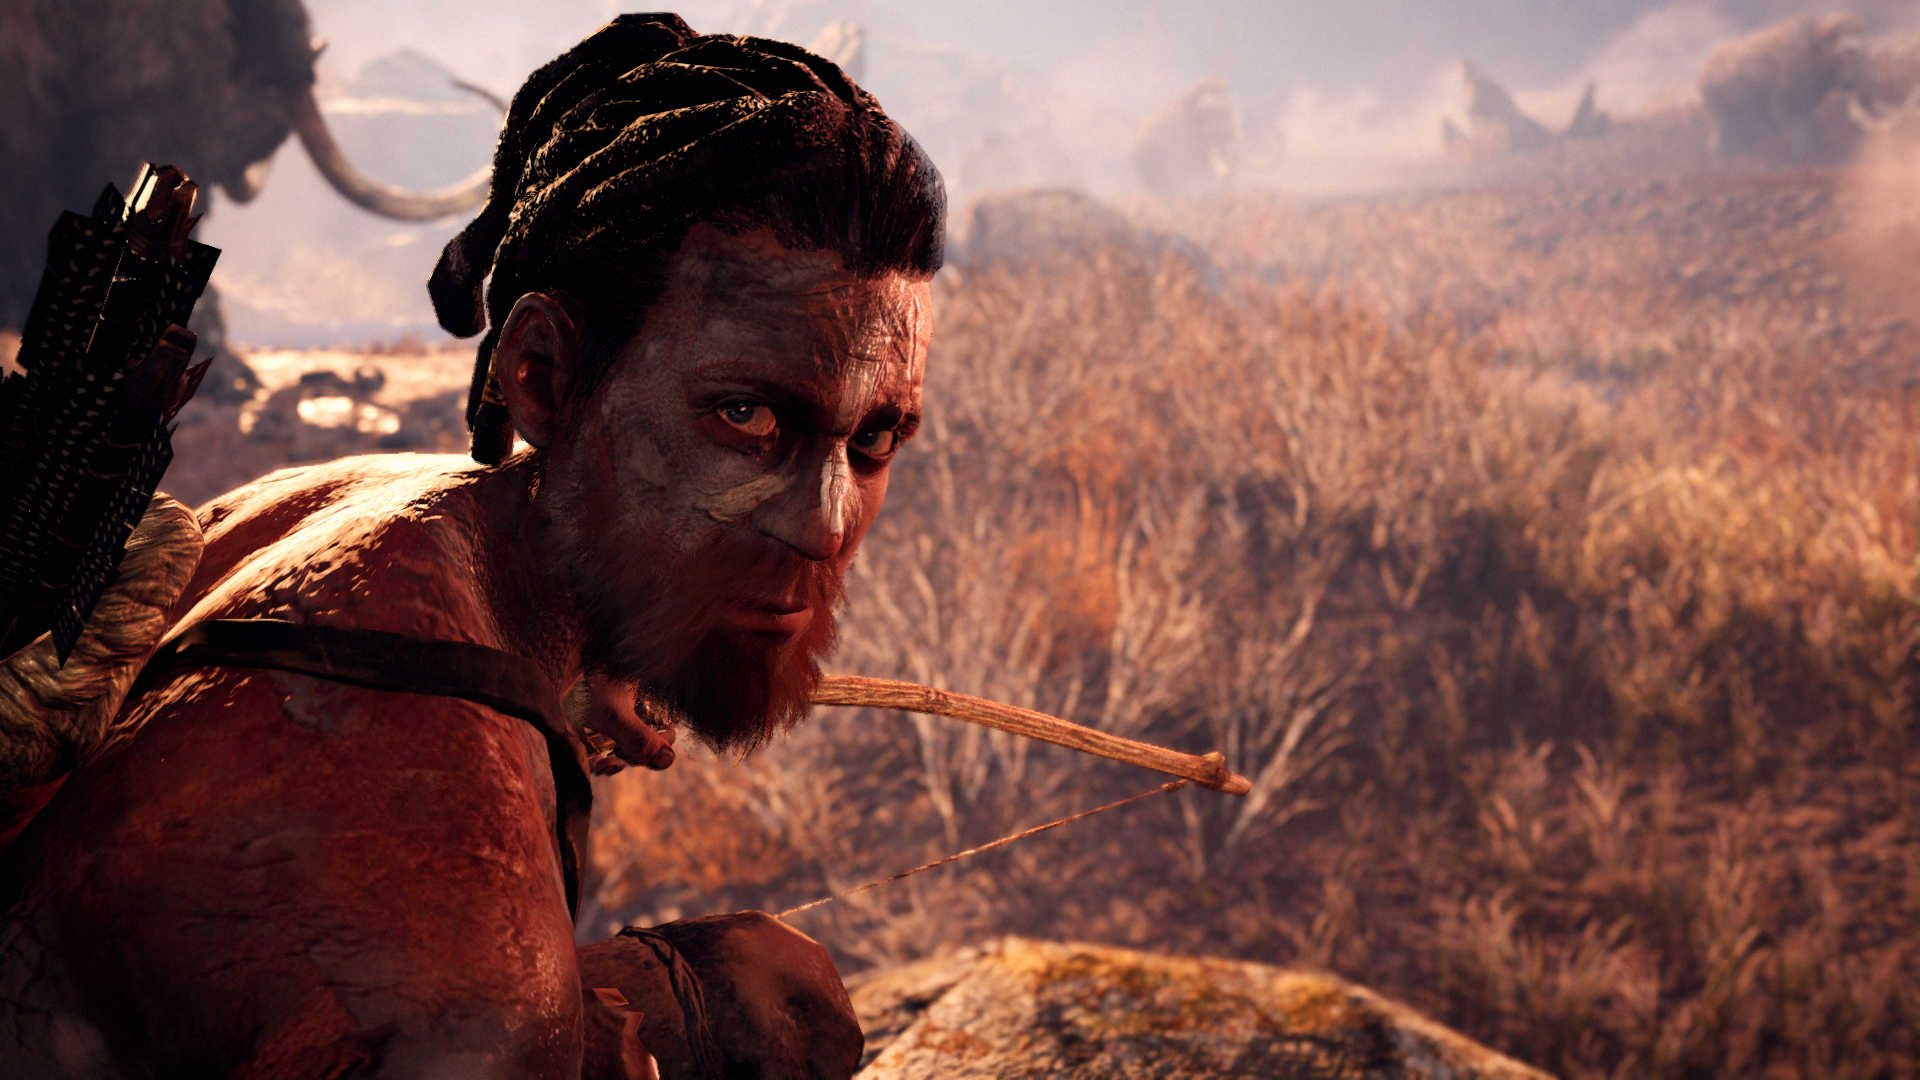 If you like Far Cry Primal, you'll also like...